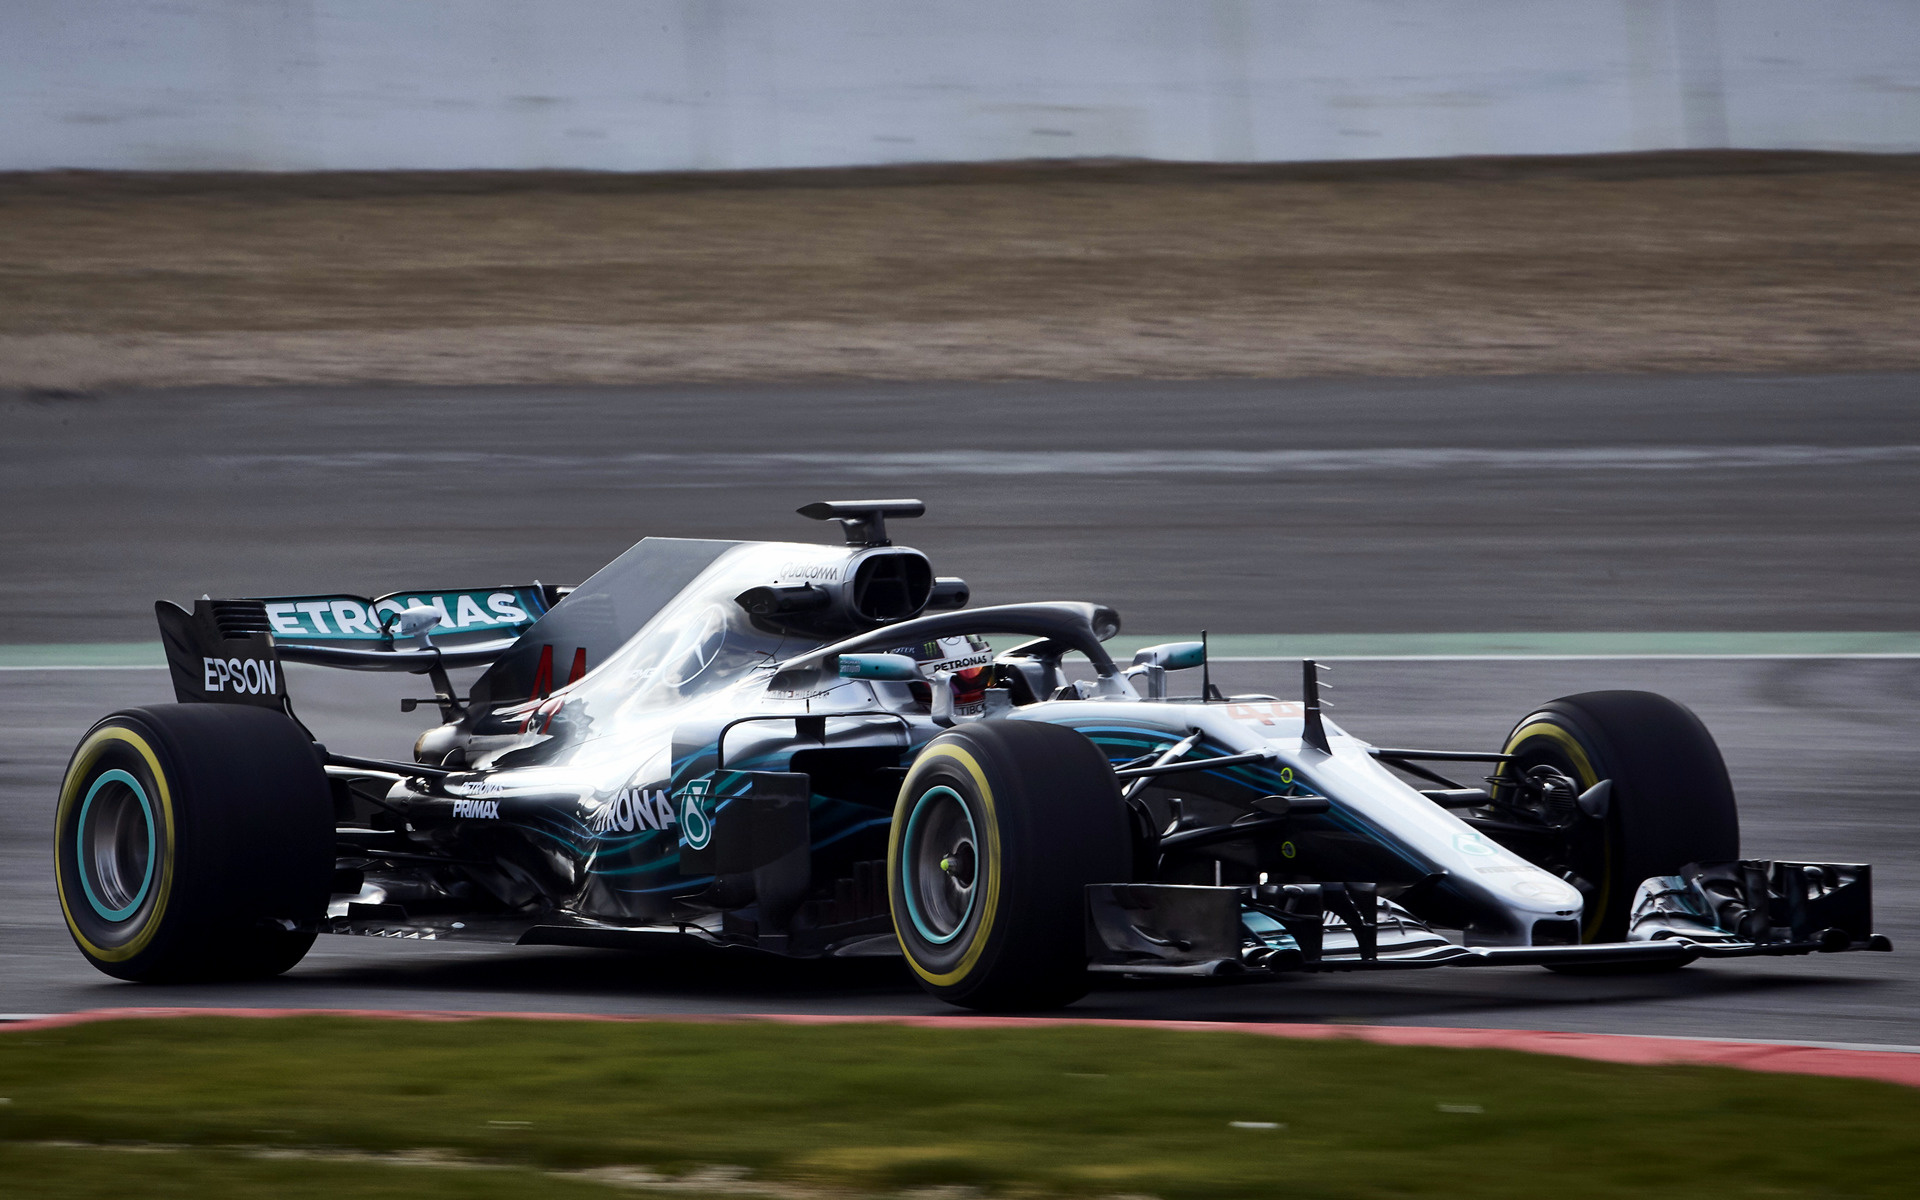 2018 Mercedes Amg F1 W09 Eq Power Wallpapers And Hd Images Car